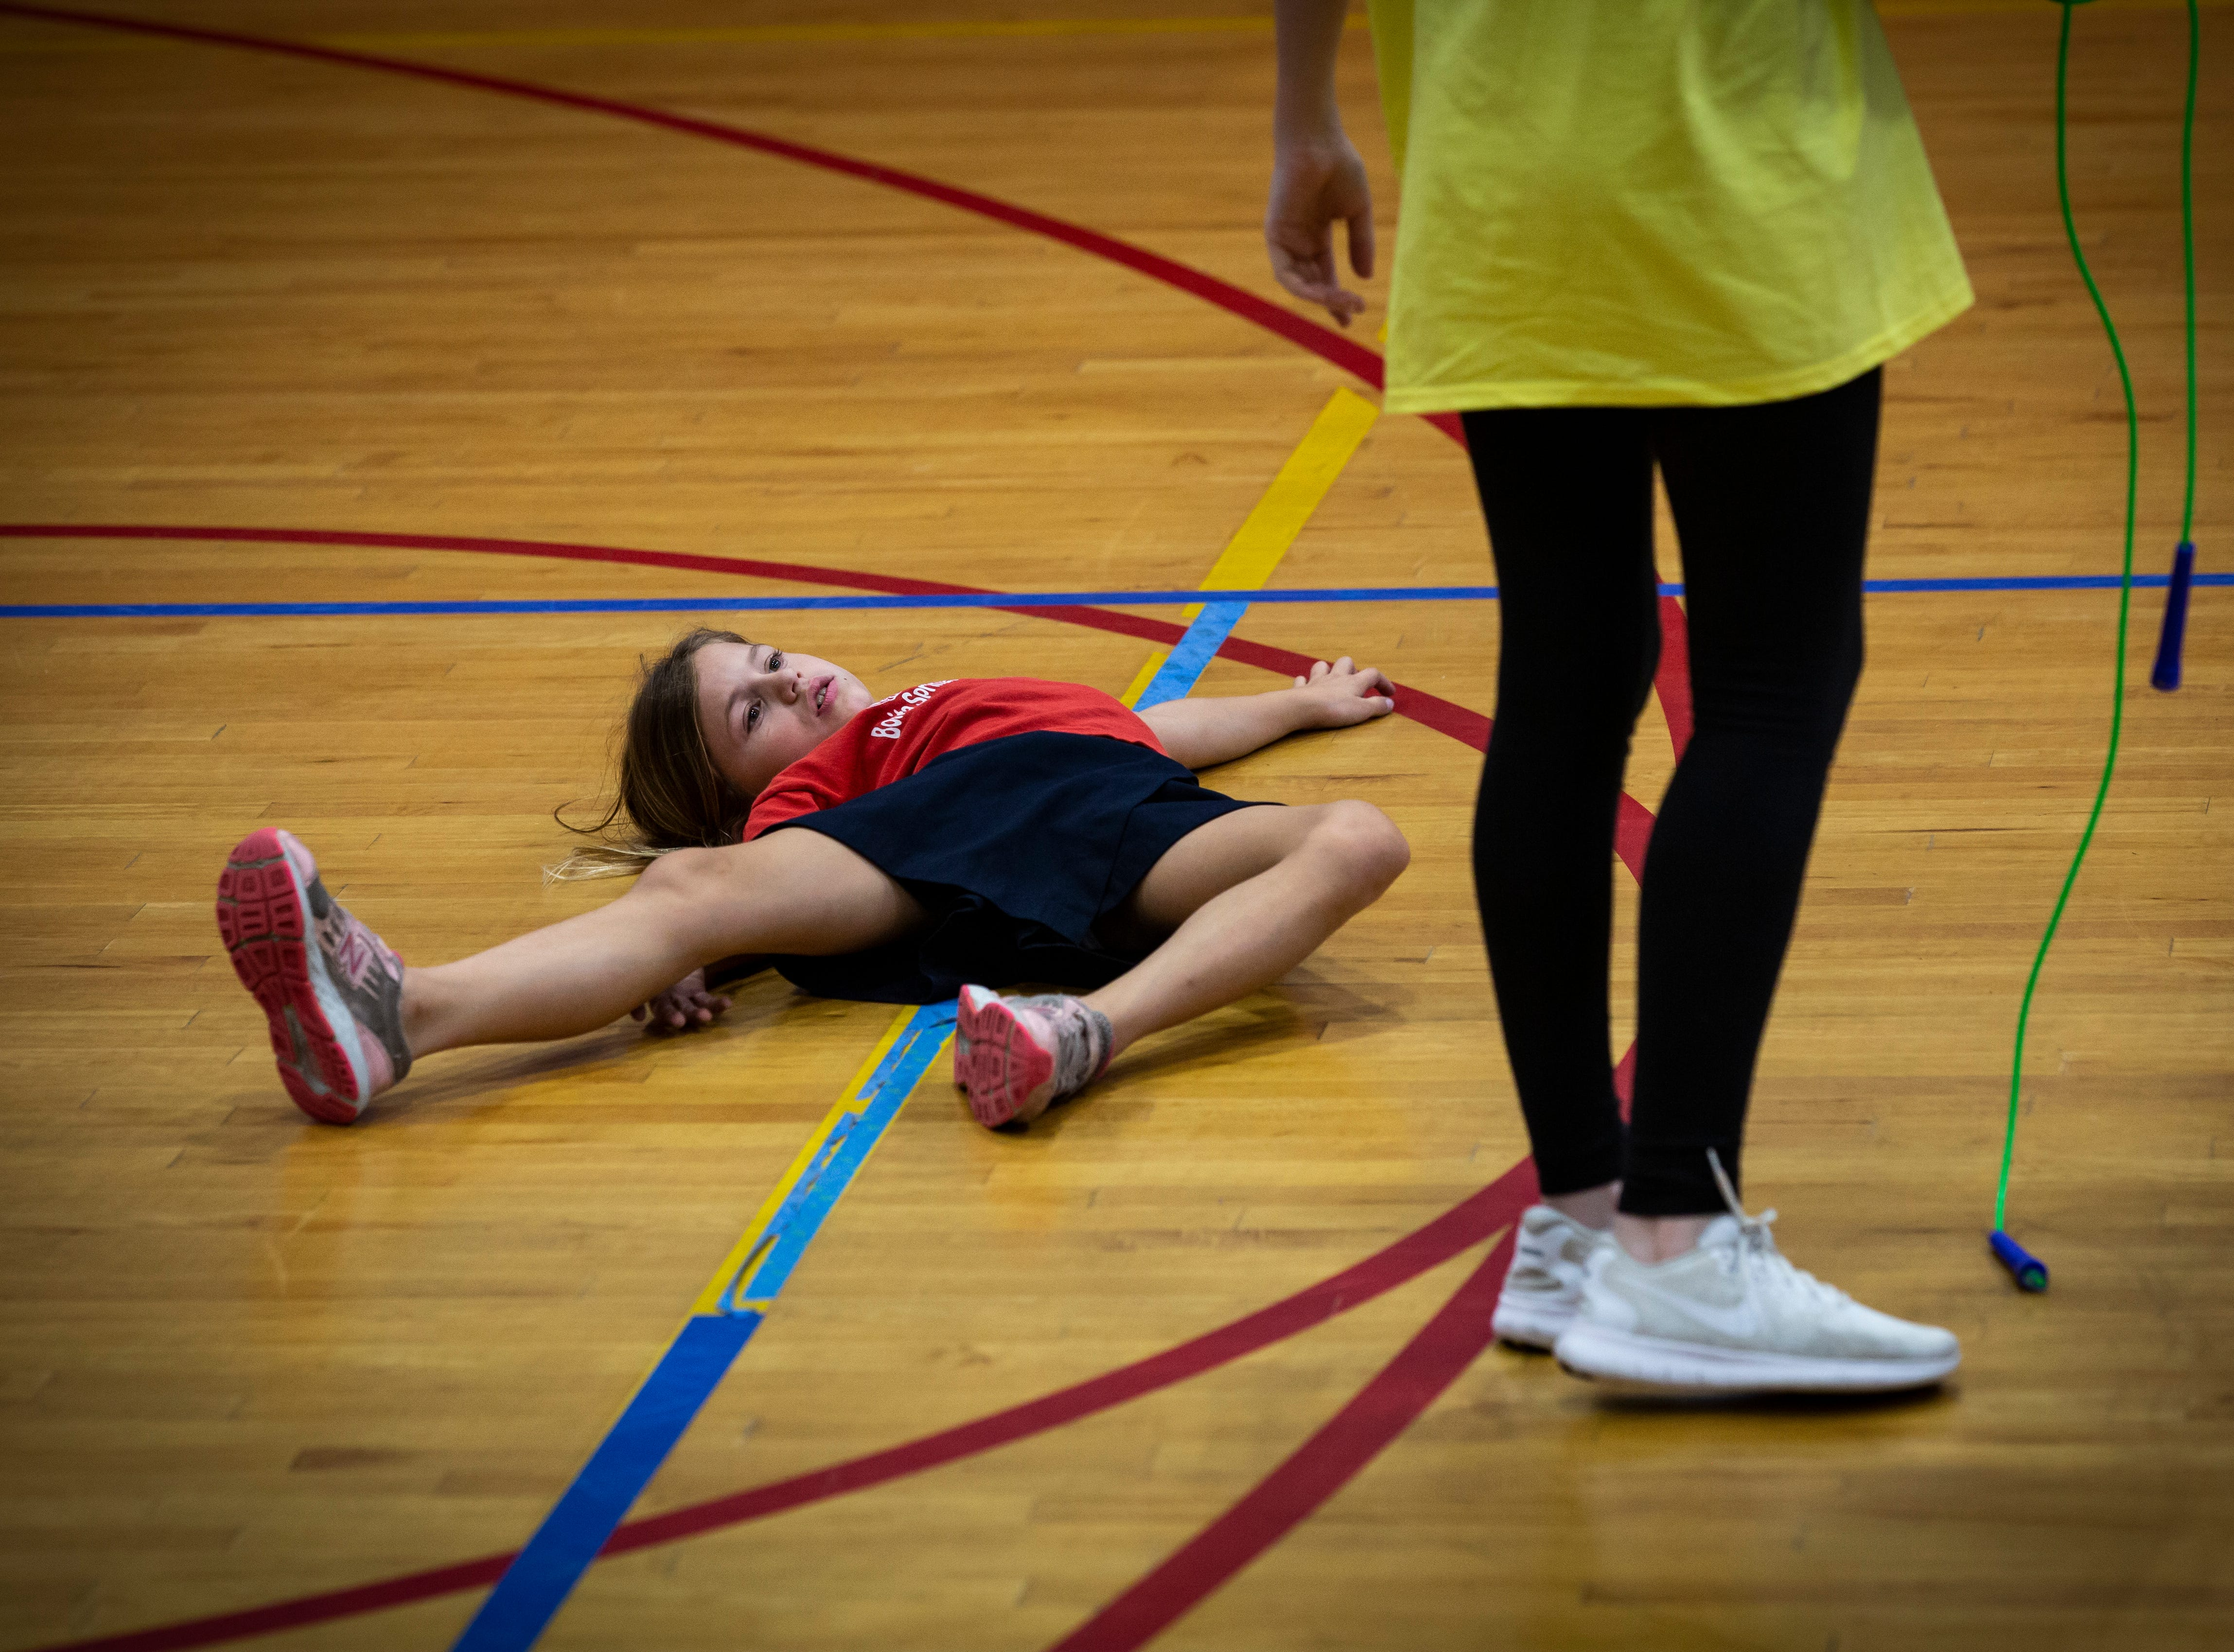 Alison Krape, 8, throws a tantrum to her counselor, Brooke Horgan during the YMCA after school program, Wednesday afternoon, Dec. 19, 2018, in Bonita Springs.